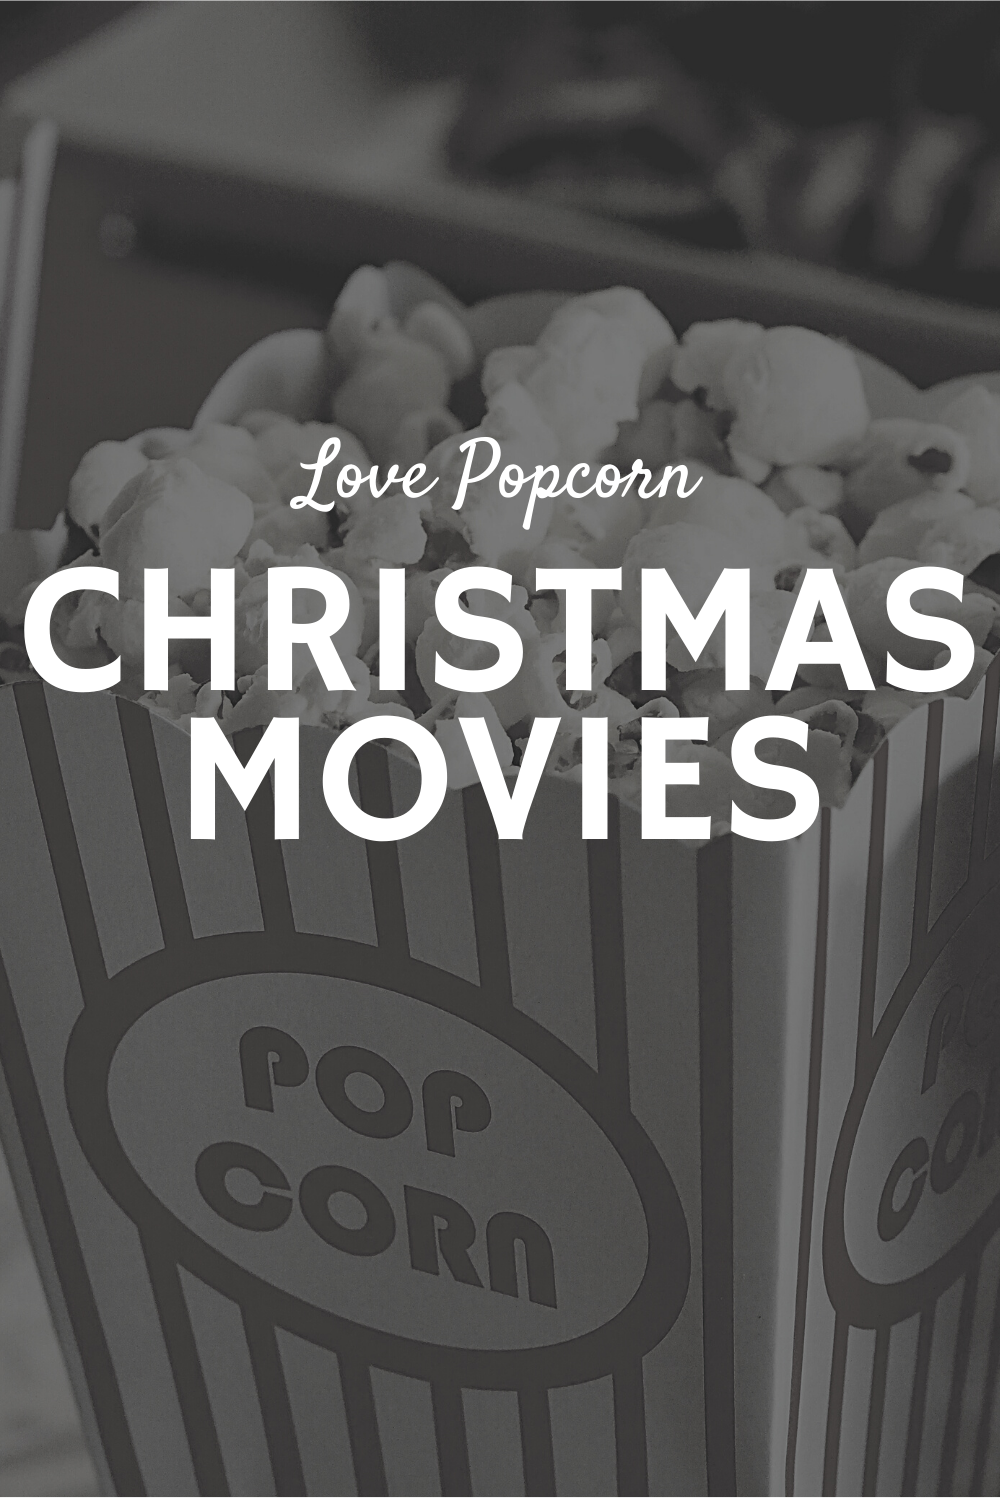 A board celebrating all movie things Christmassy.  #christmasmovies